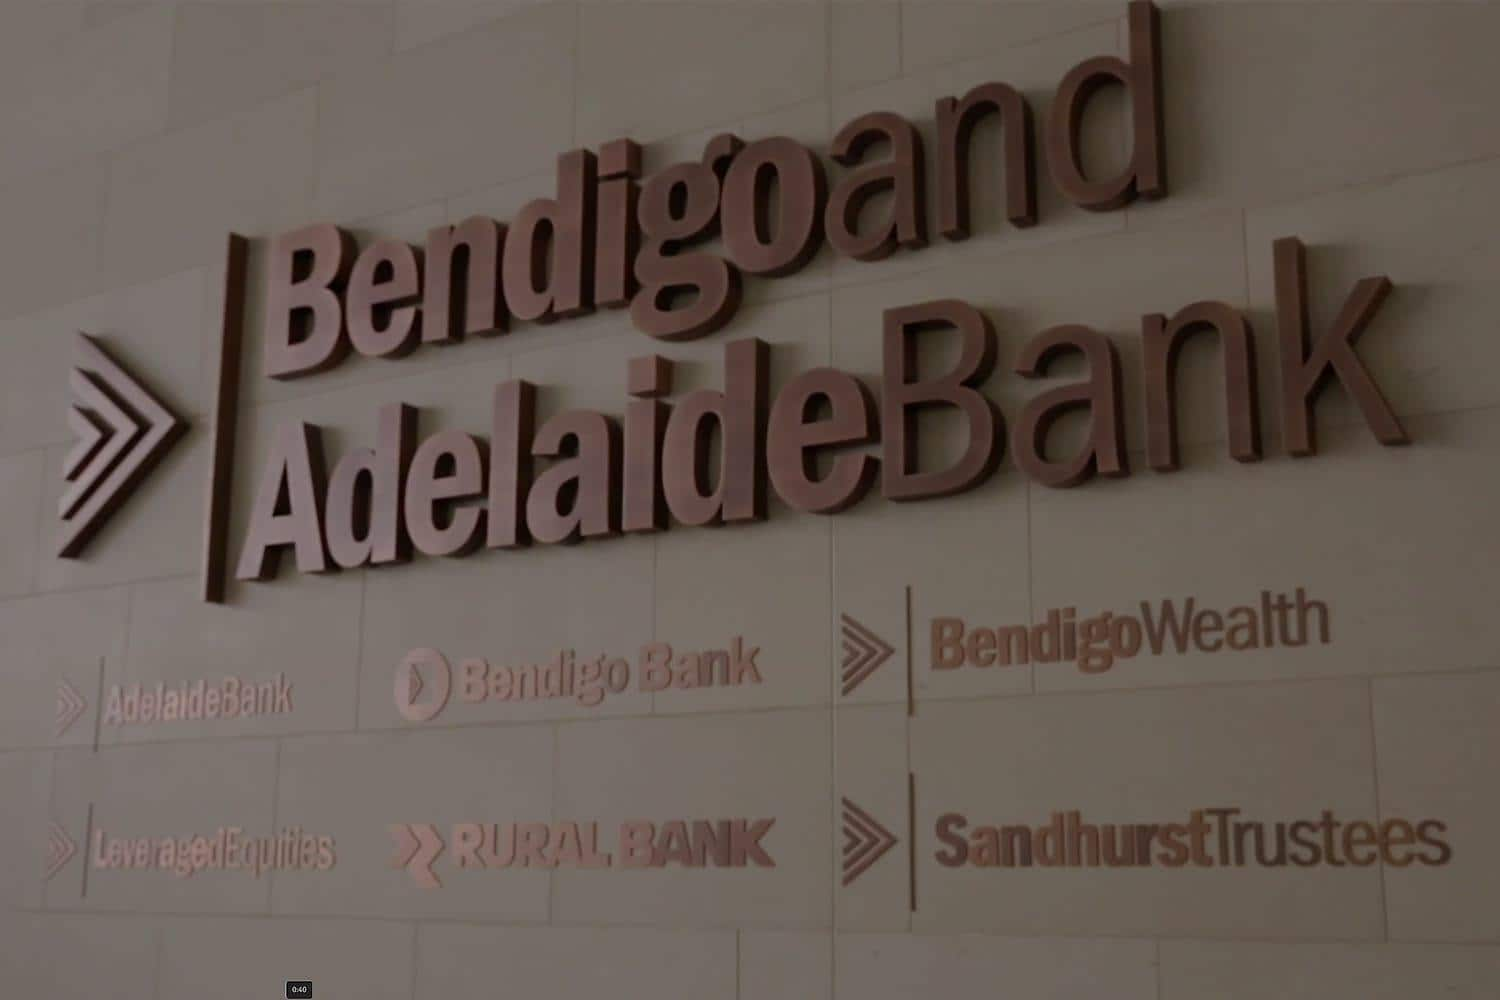 Bendigo and Adelaide Bank video still